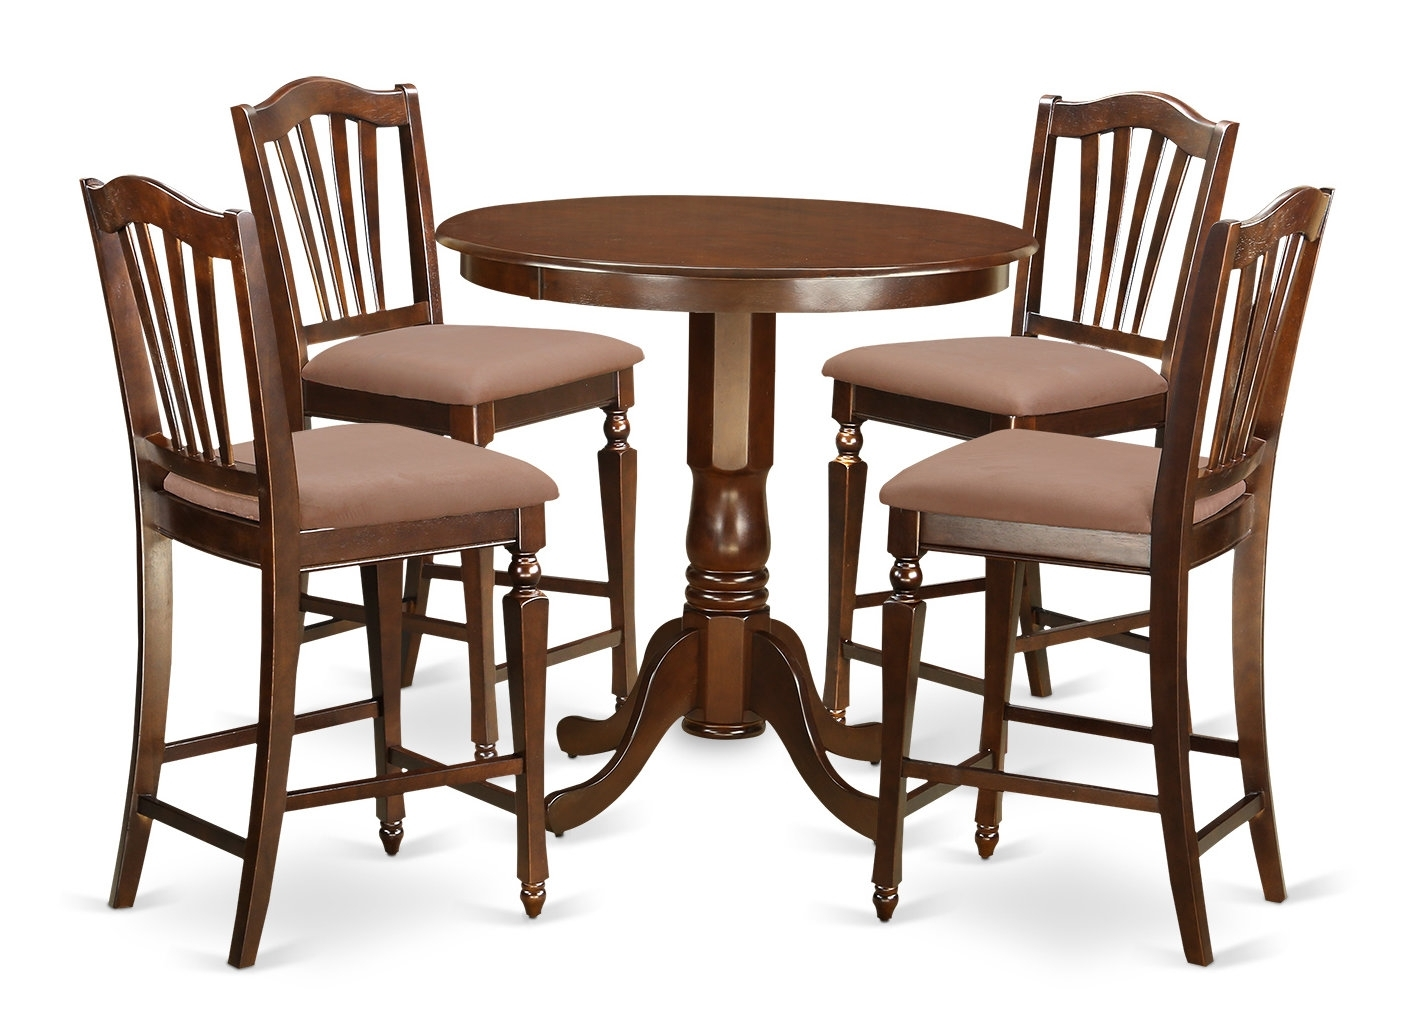 East West Jackson 5 Piece Counter Height Pub Table Set | Wayfair With Most Recent Jaxon Grey 5 Piece Round Extension Dining Sets With Upholstered Chairs (View 13 of 20)